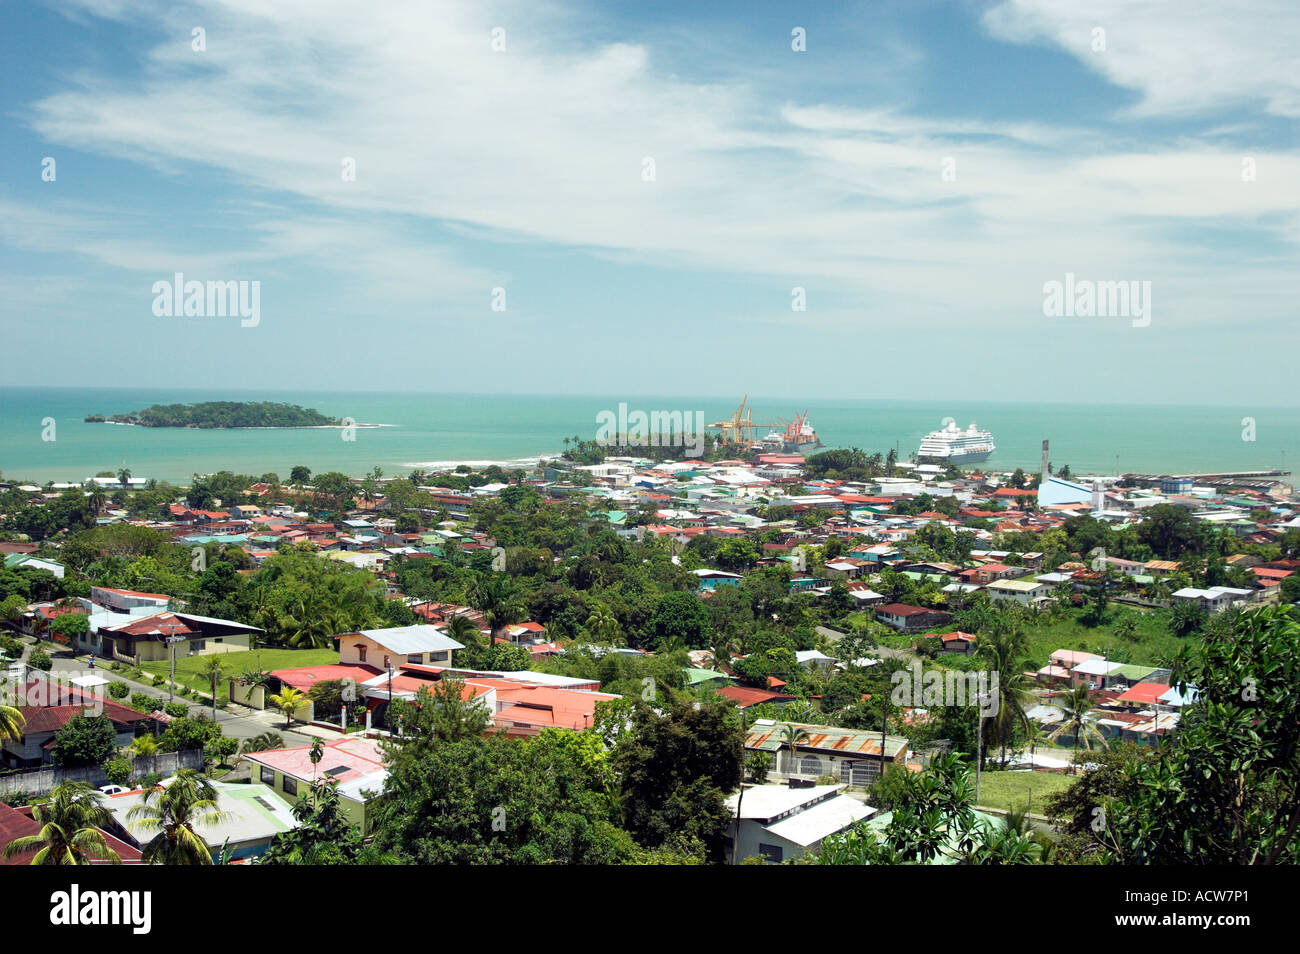 The Port City Of Puerto Limon Costa Rica And Its Cruise And Container Stock Photo Alamy